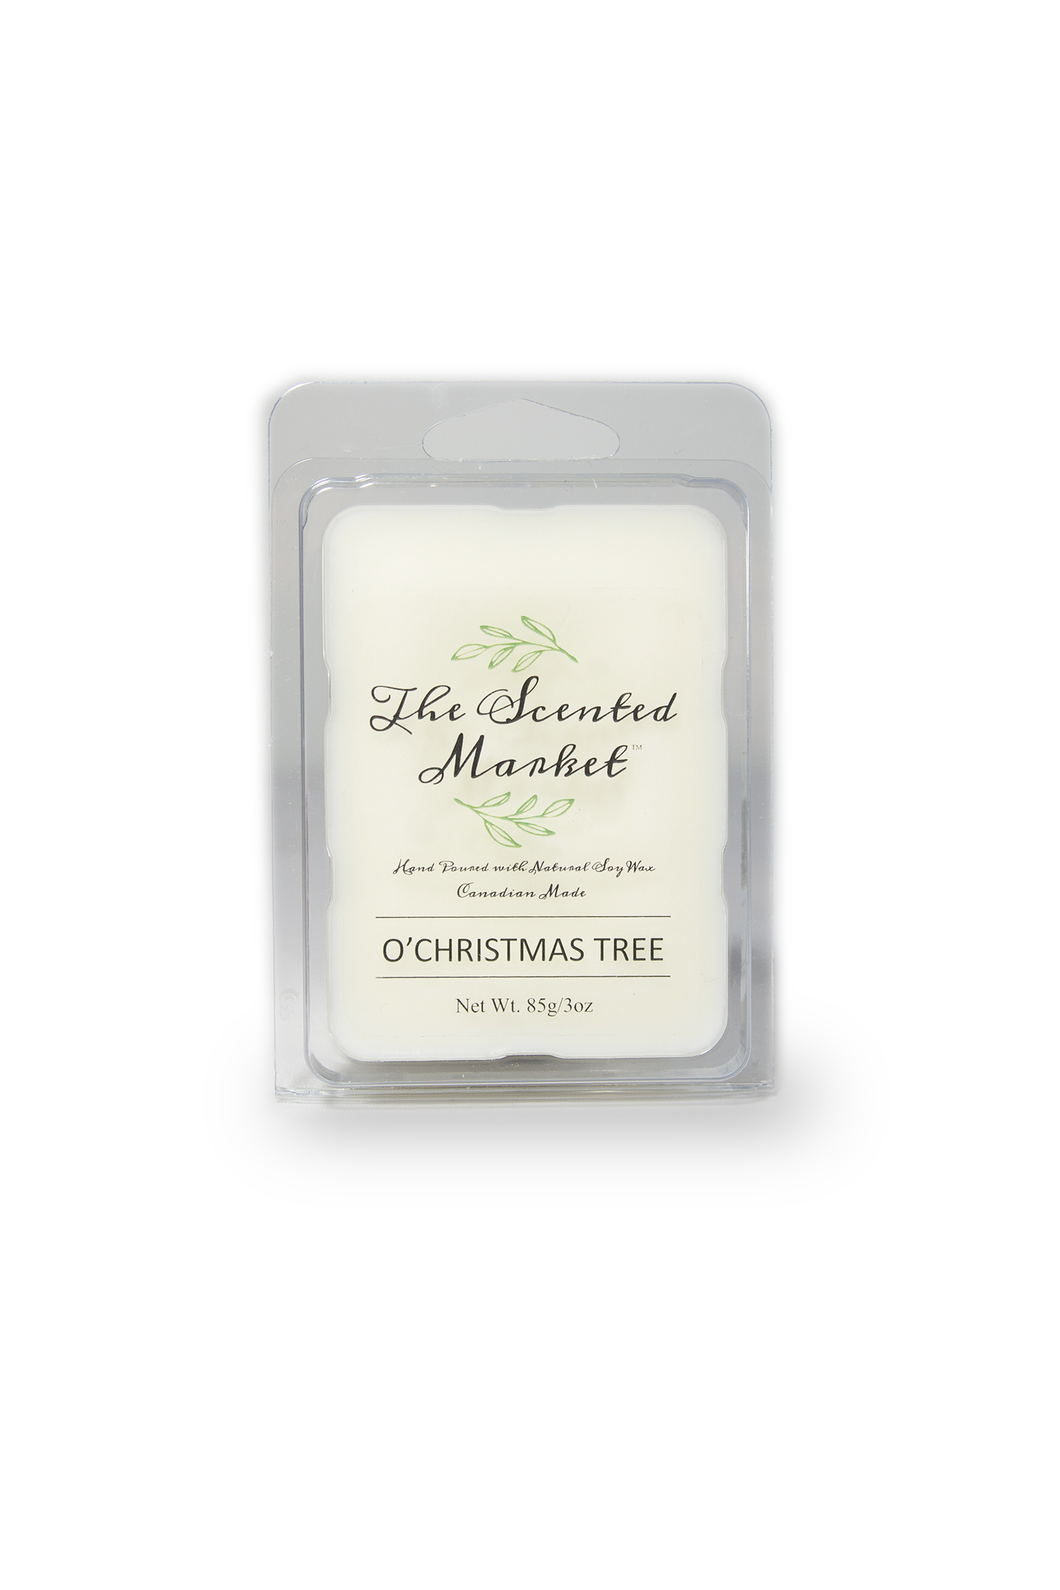 O' CHRISTMAS TREE Soy Wax Melt